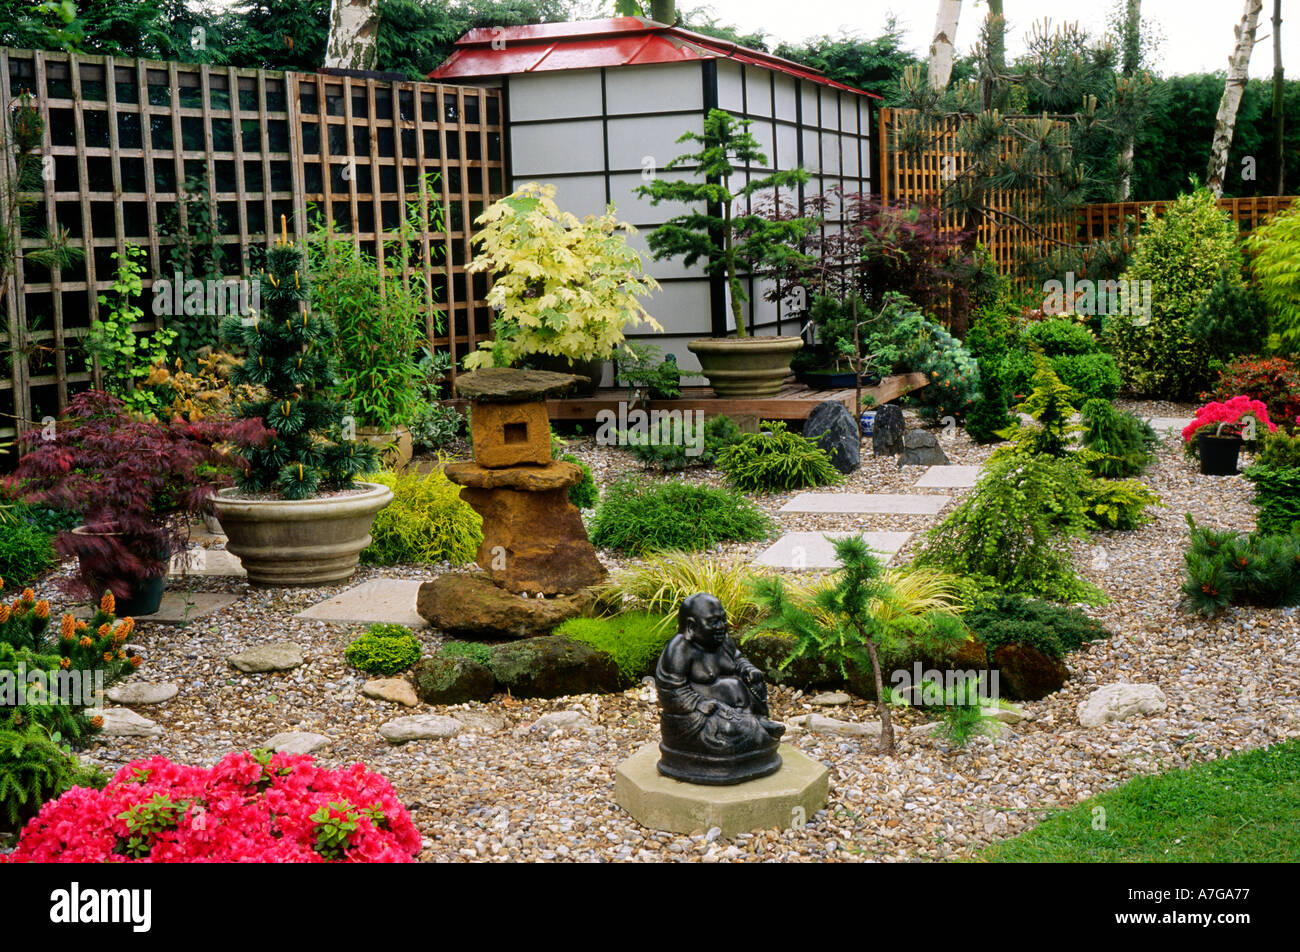 Japanese style small garden england uk garden small garden for Garden designs for small gardens uk